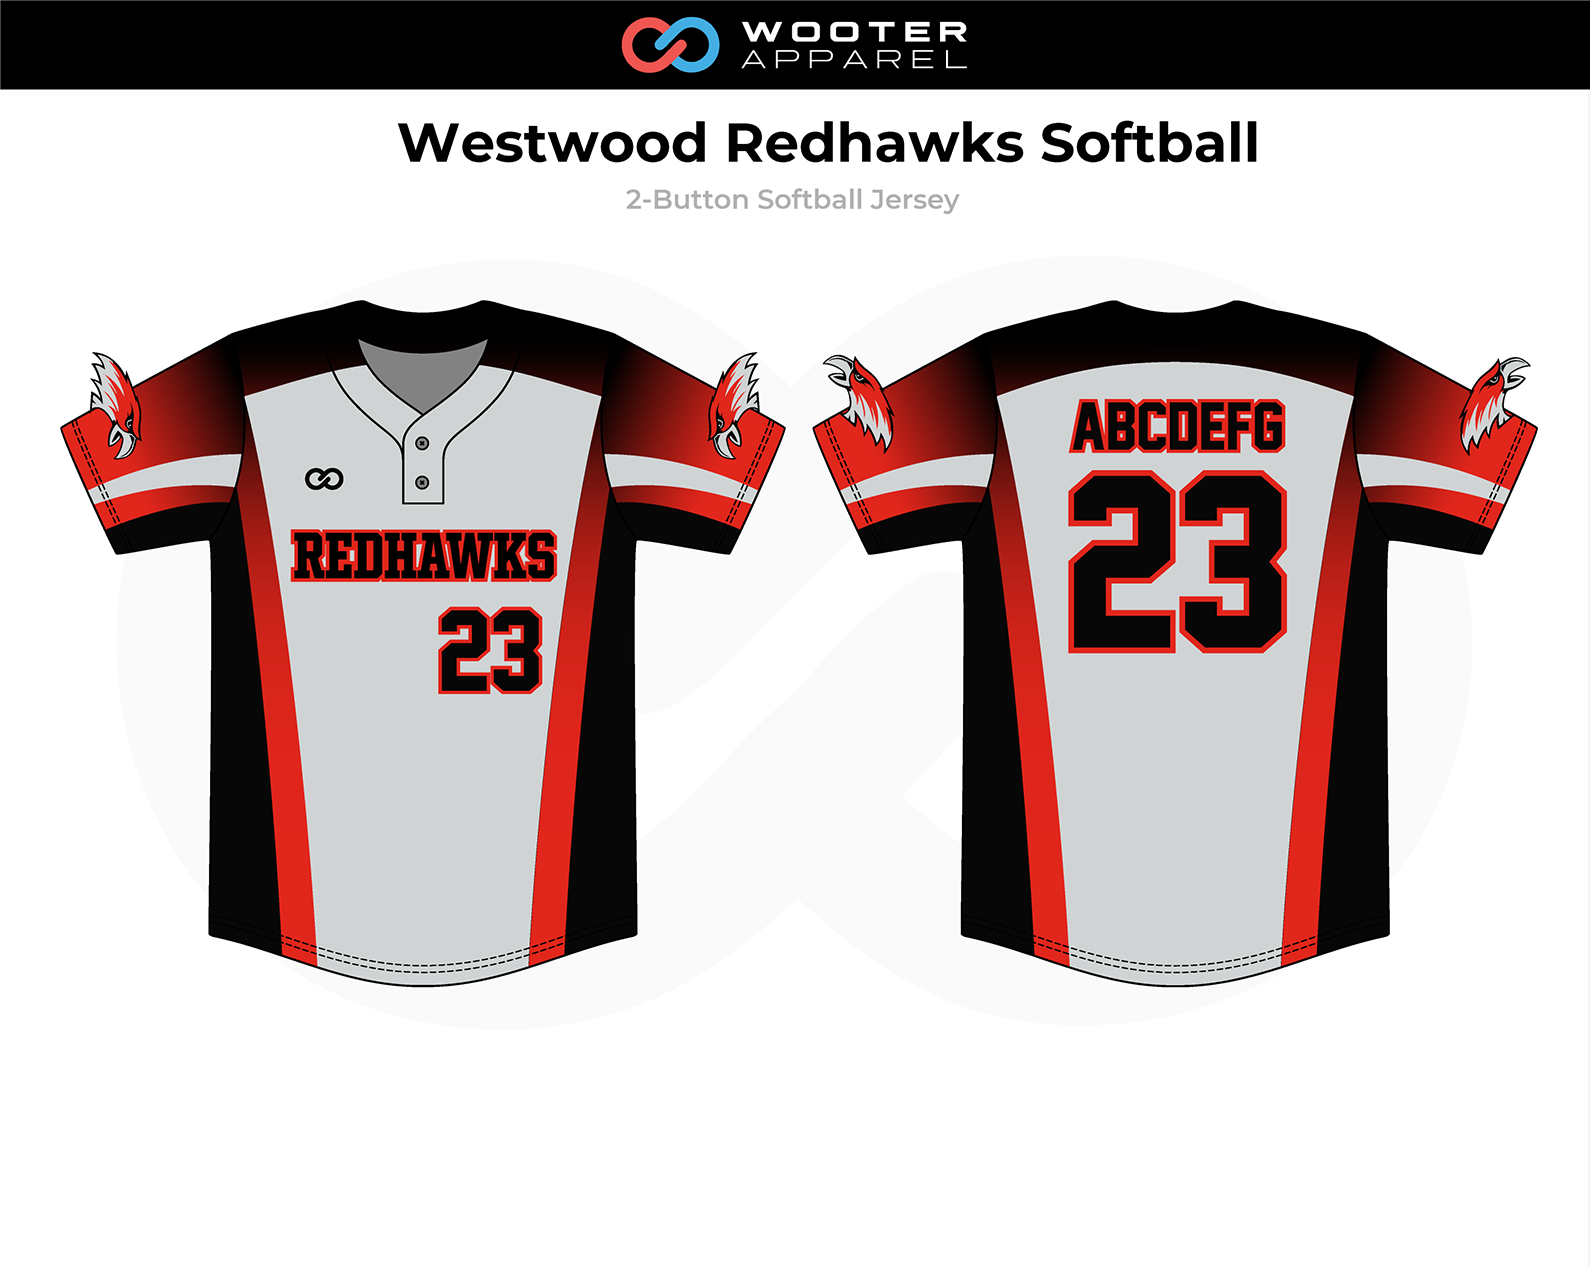 2018-11-13 Westwood Redhawks Softball 2-Button Jersey (Modern).png